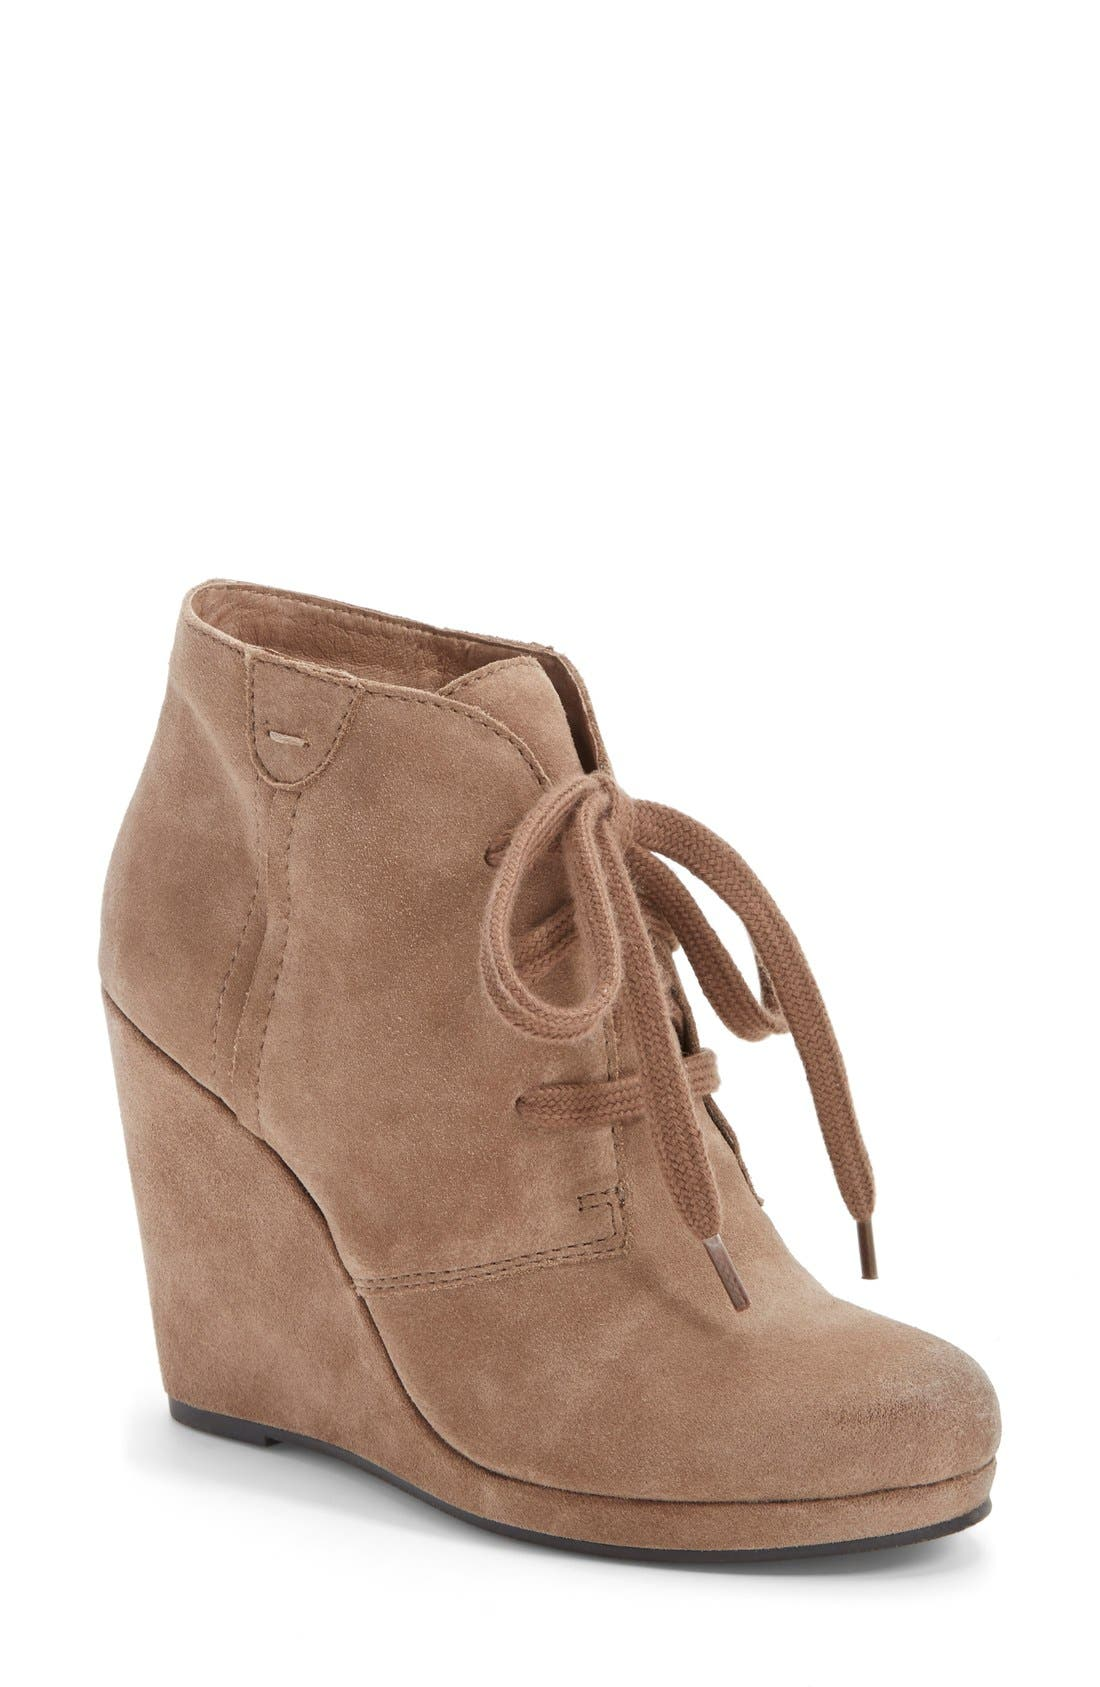 Alternate Image 1 Selected - Dolce Vita 'Gael' Suede Bootie (Women)